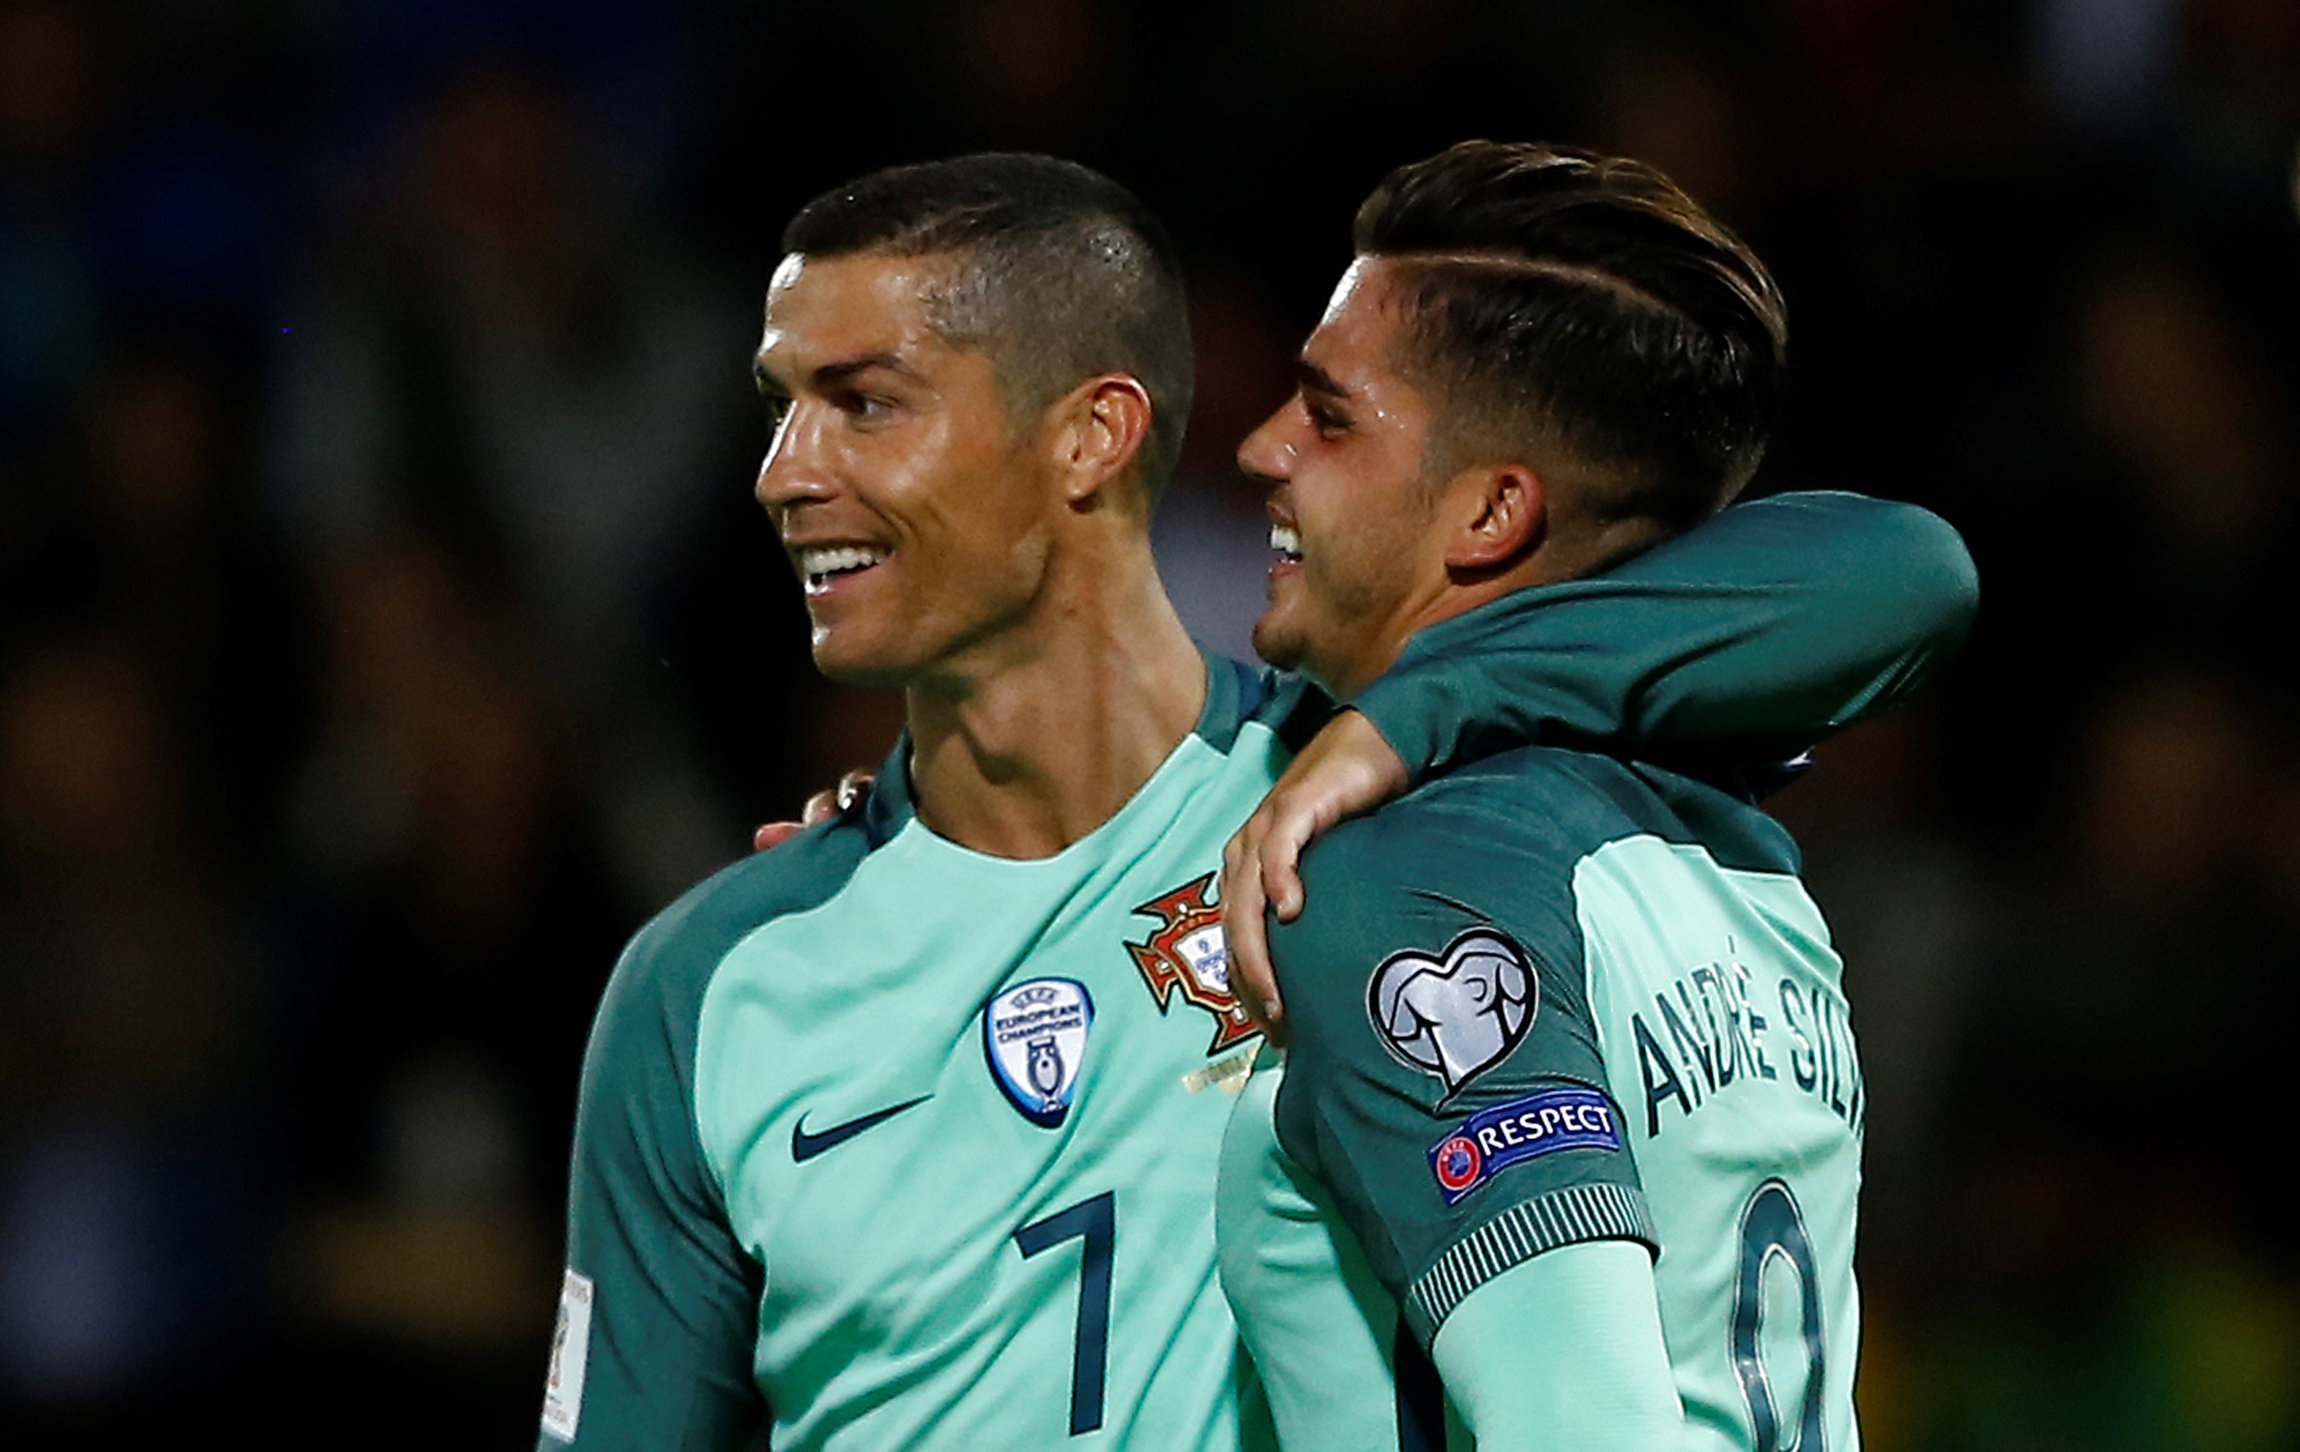 La belgique conforte sa place ronaldo guide le portugal - Coupe du portugal football ...